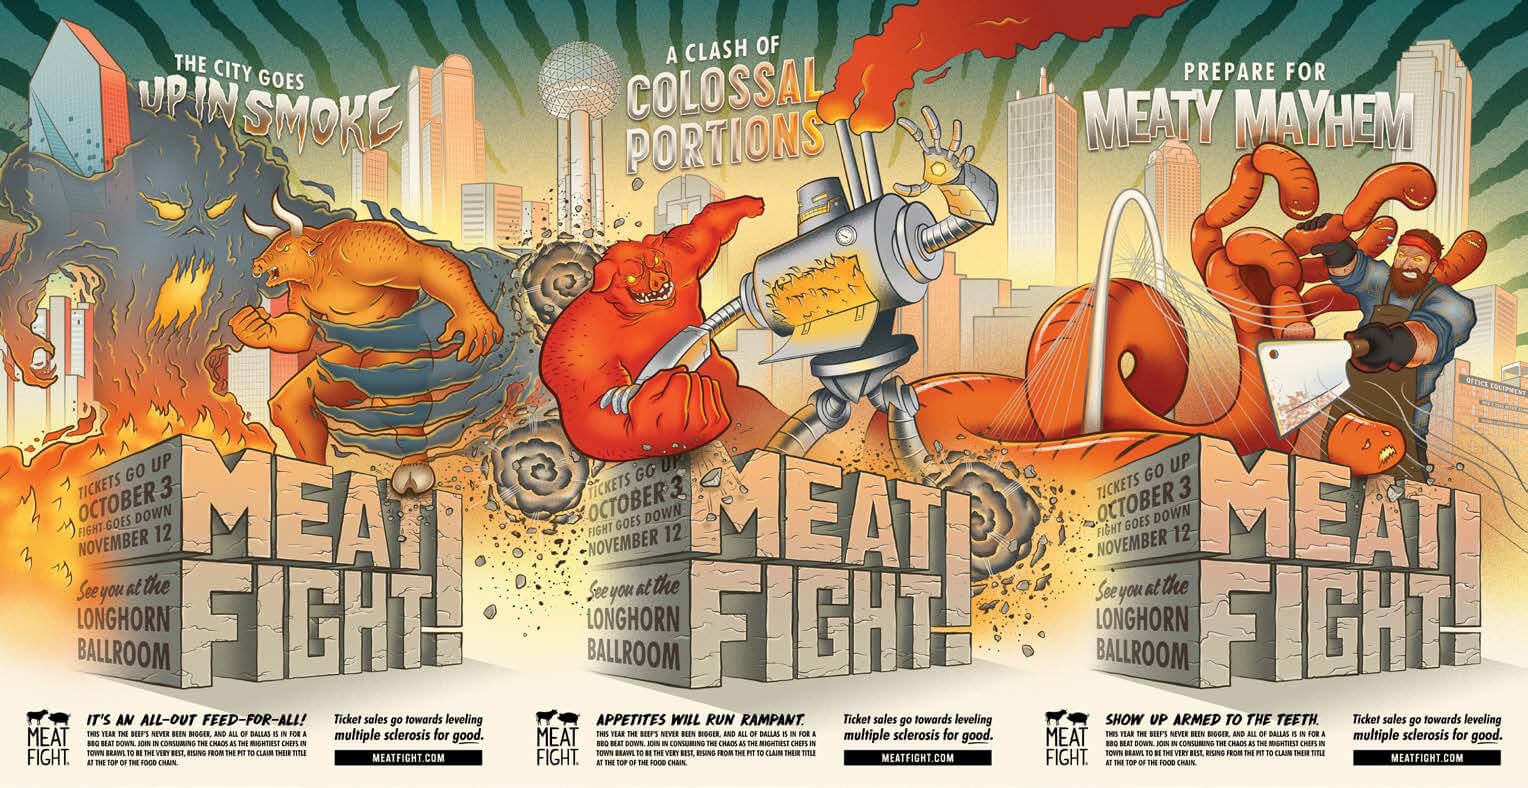 Meat Fight posters